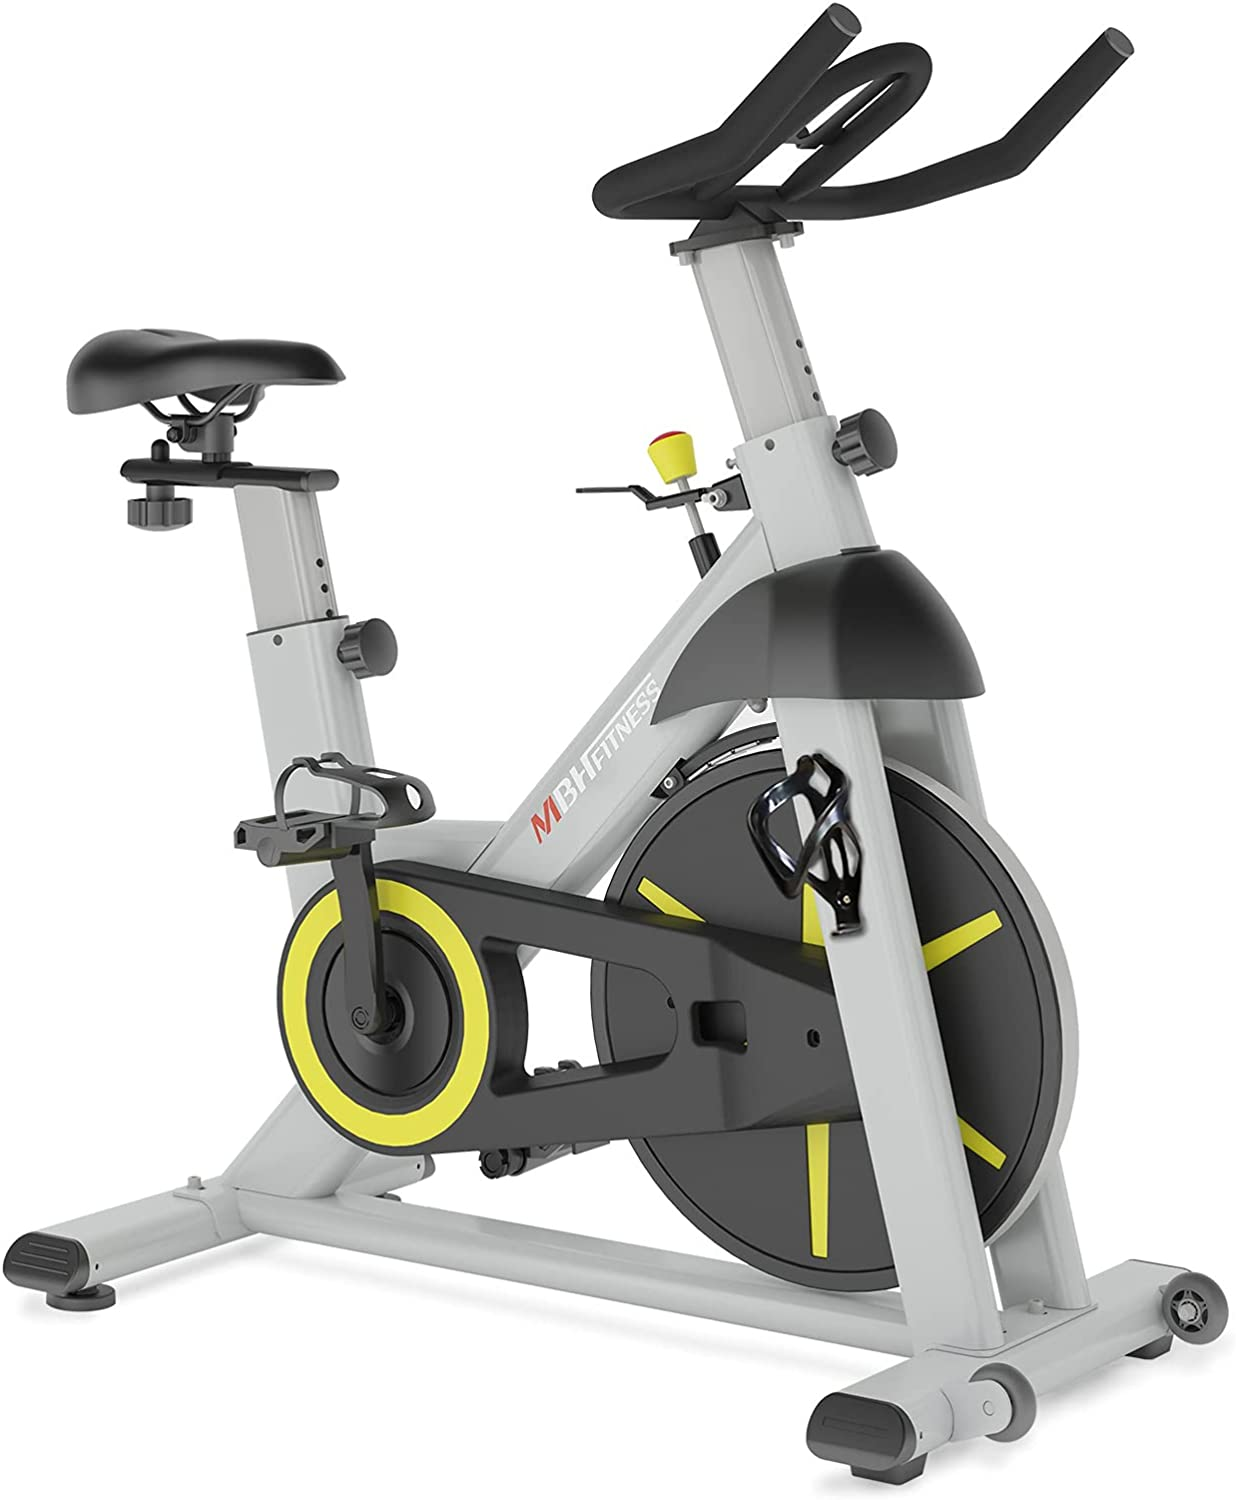 MBH Fitness Magnetic Exercise Bike Stationary, Indoor Cycling Bike for Home Gym Use, Fitness App, 330Lbs Weight Capacity, Tablet Holder, Bottle Holder, Quiet Cardio Workout Equipment